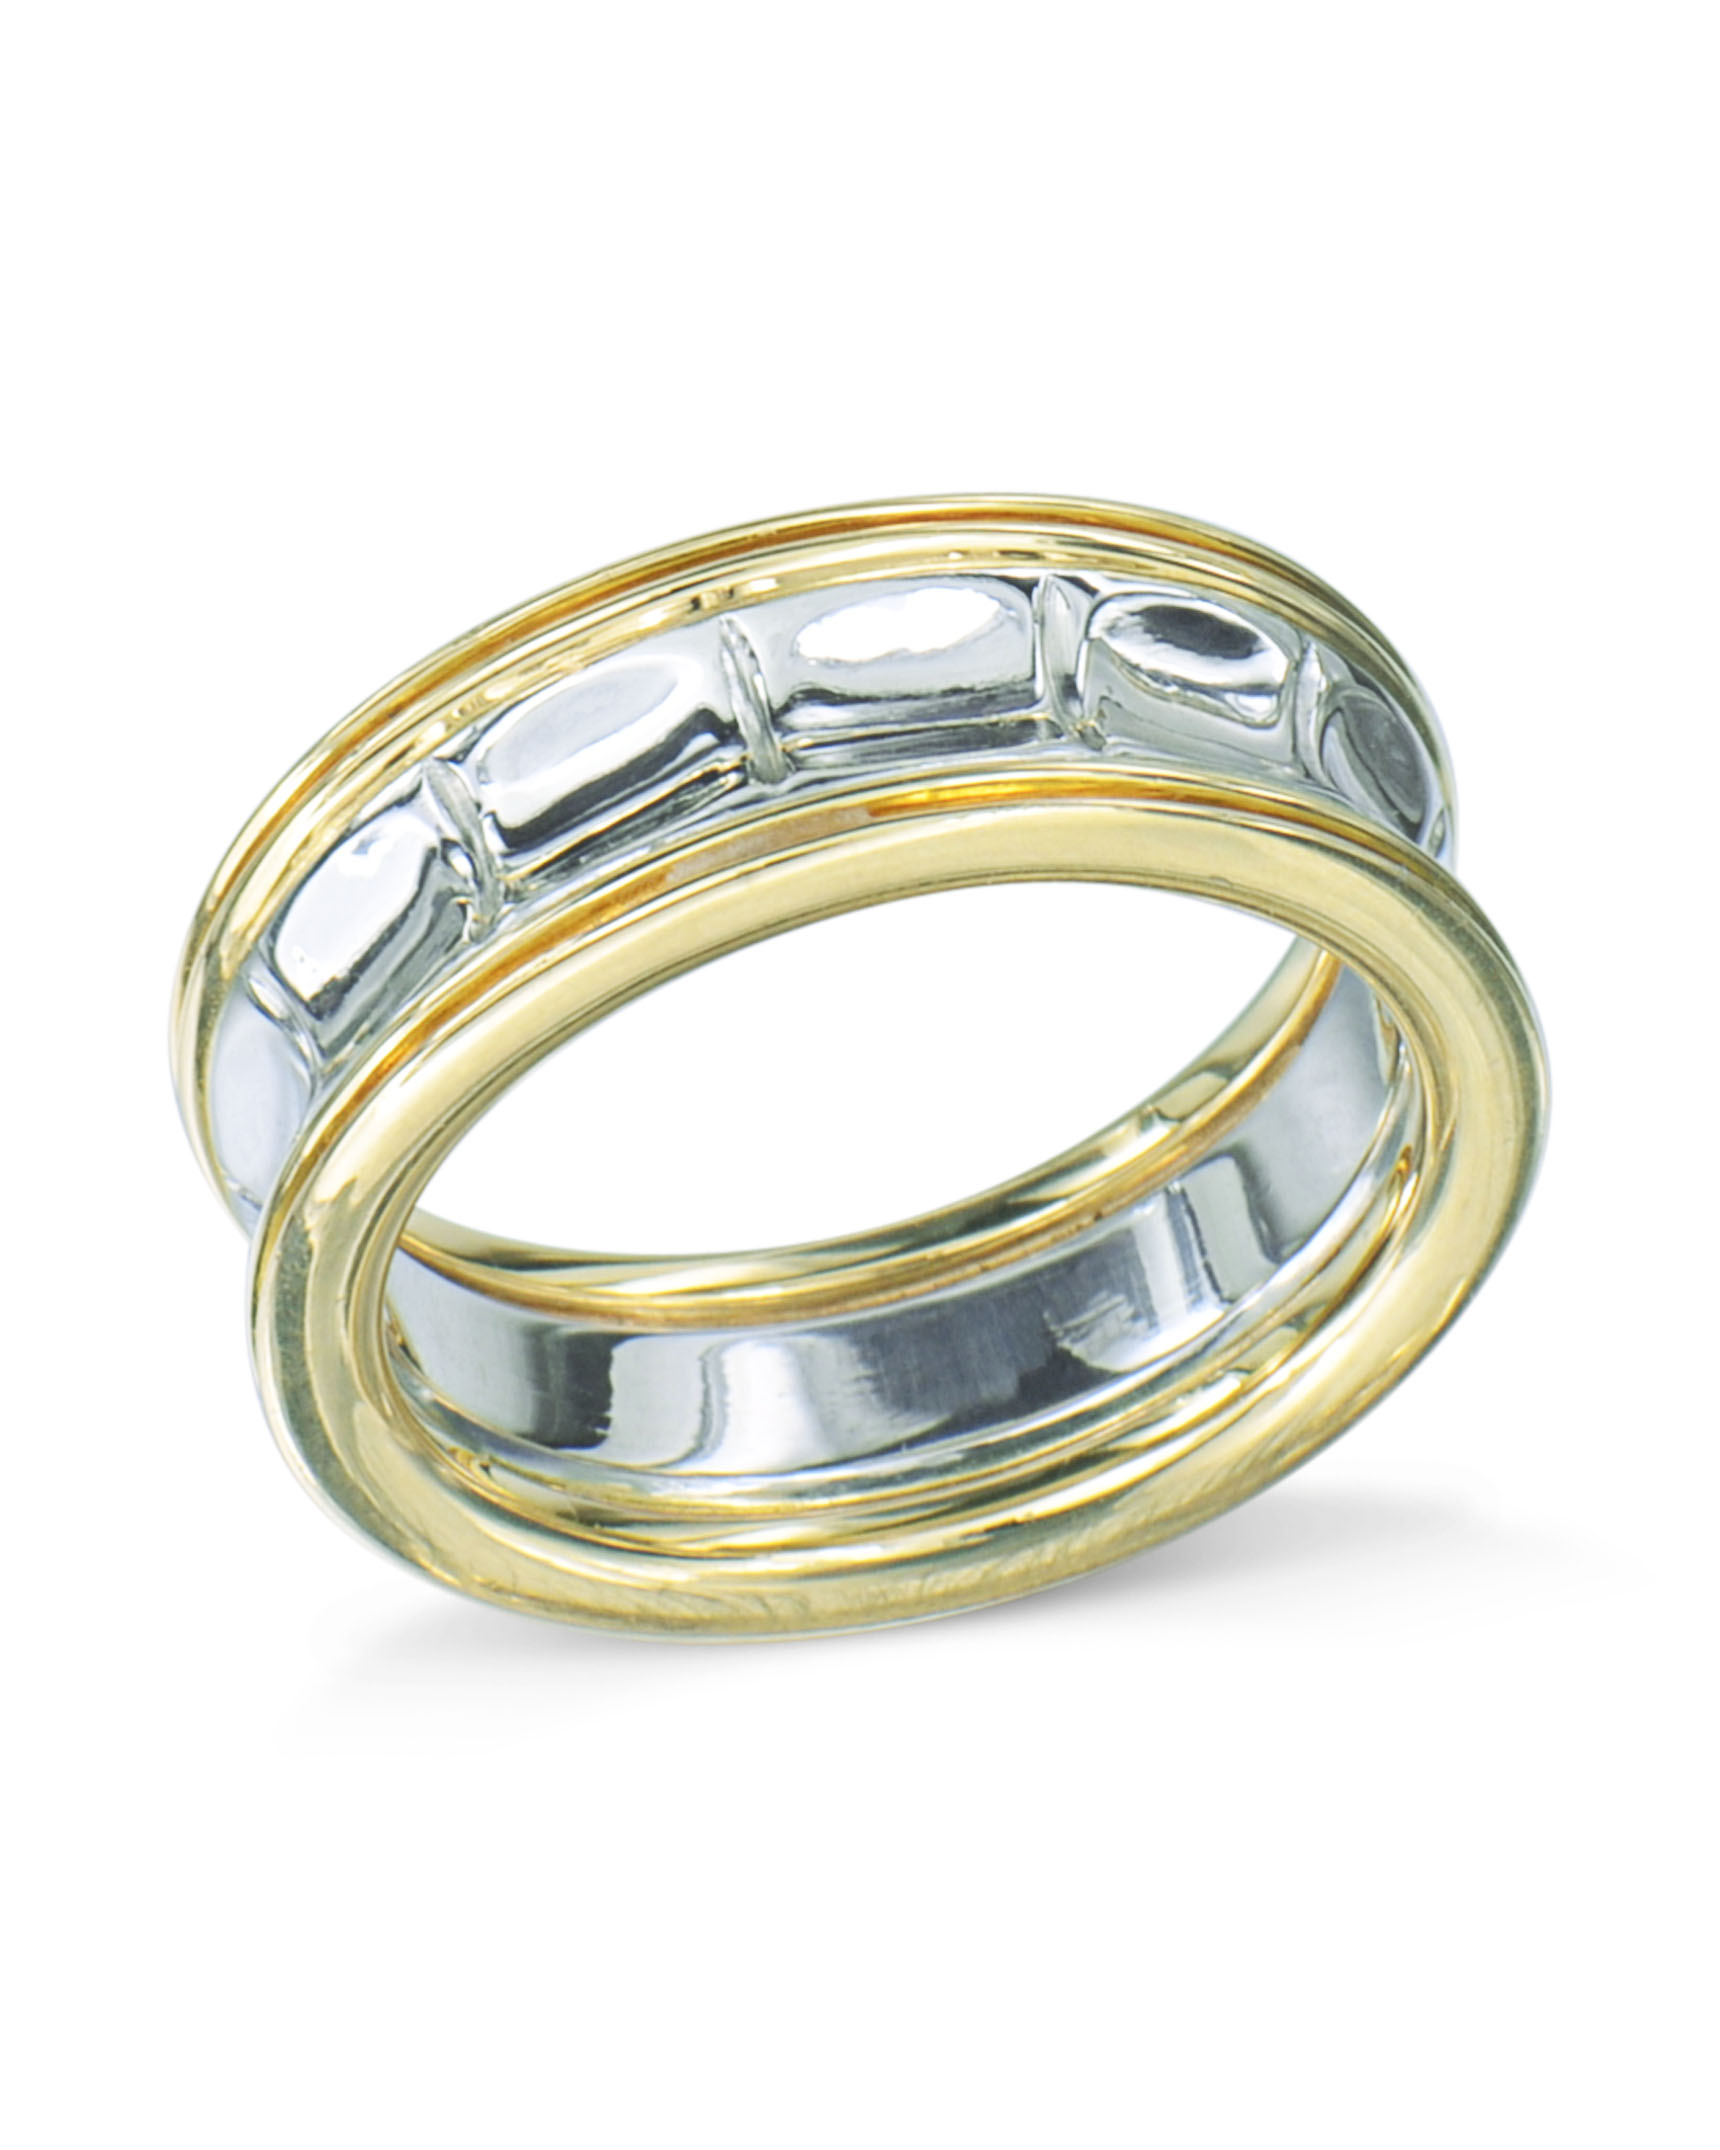 silver band tone dp platinum set com jewelry gold wide wedding ring millimeters amazon bands raphael sterling and alain yellow